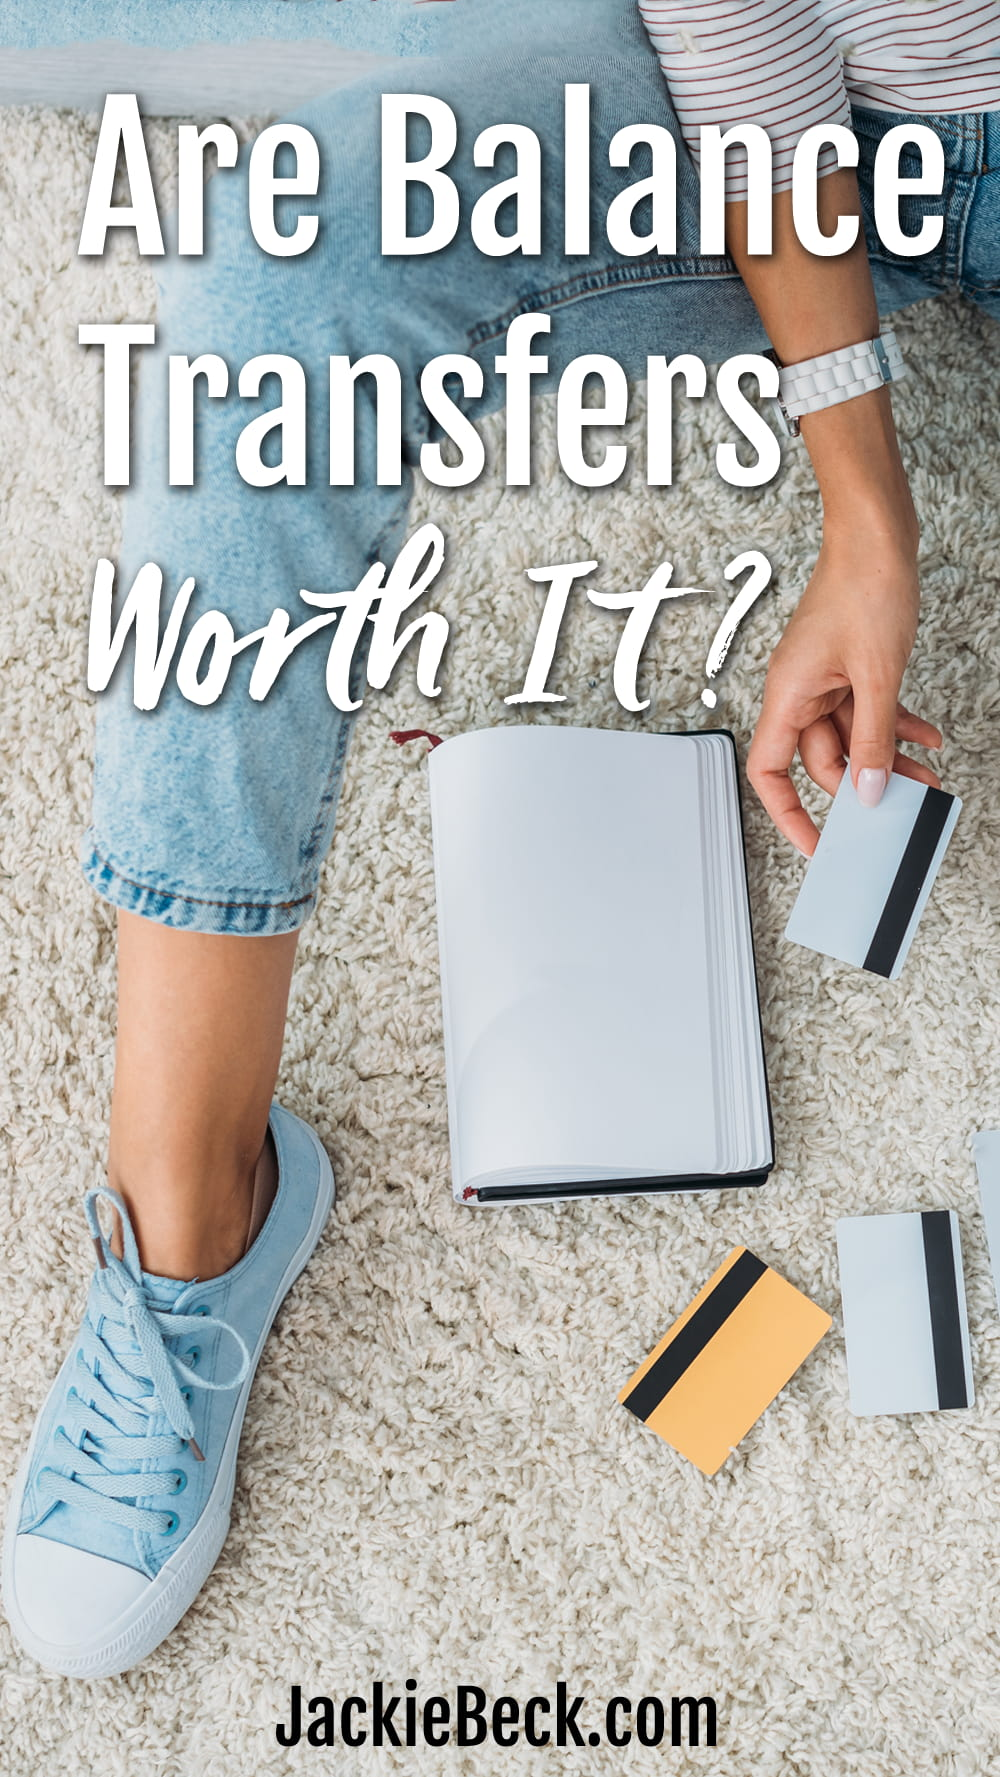 Are balance transfers worthwhile when paying off debts? So you know.